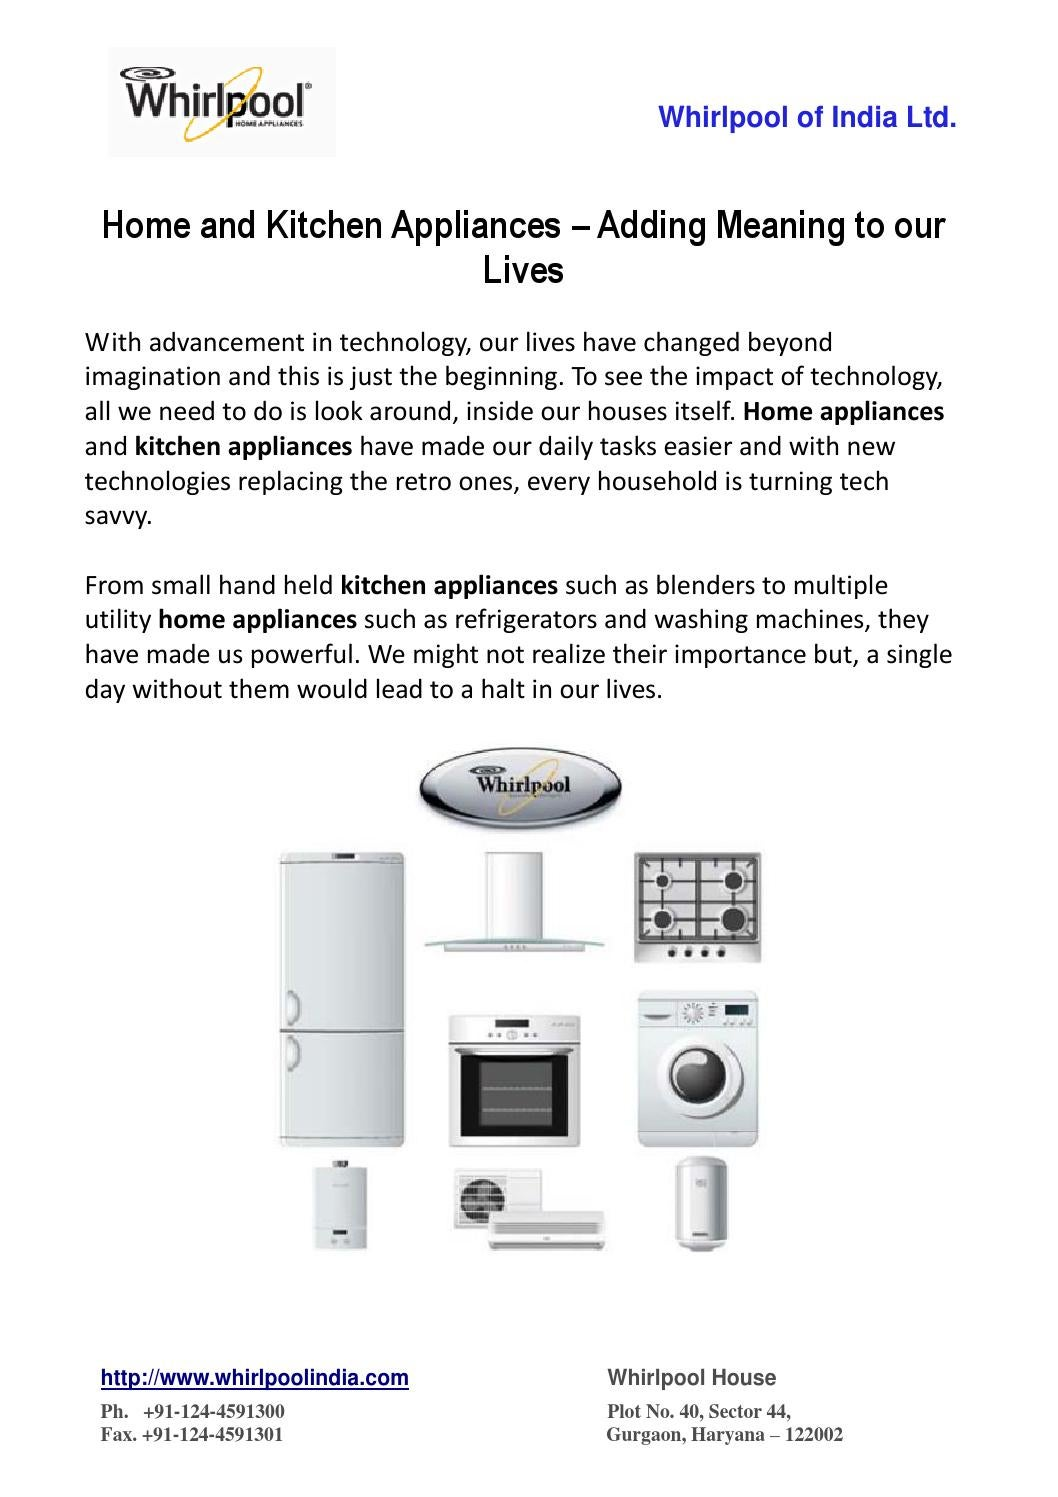 Home And Kitchen Appliances Adding Meaning To Our Lives By